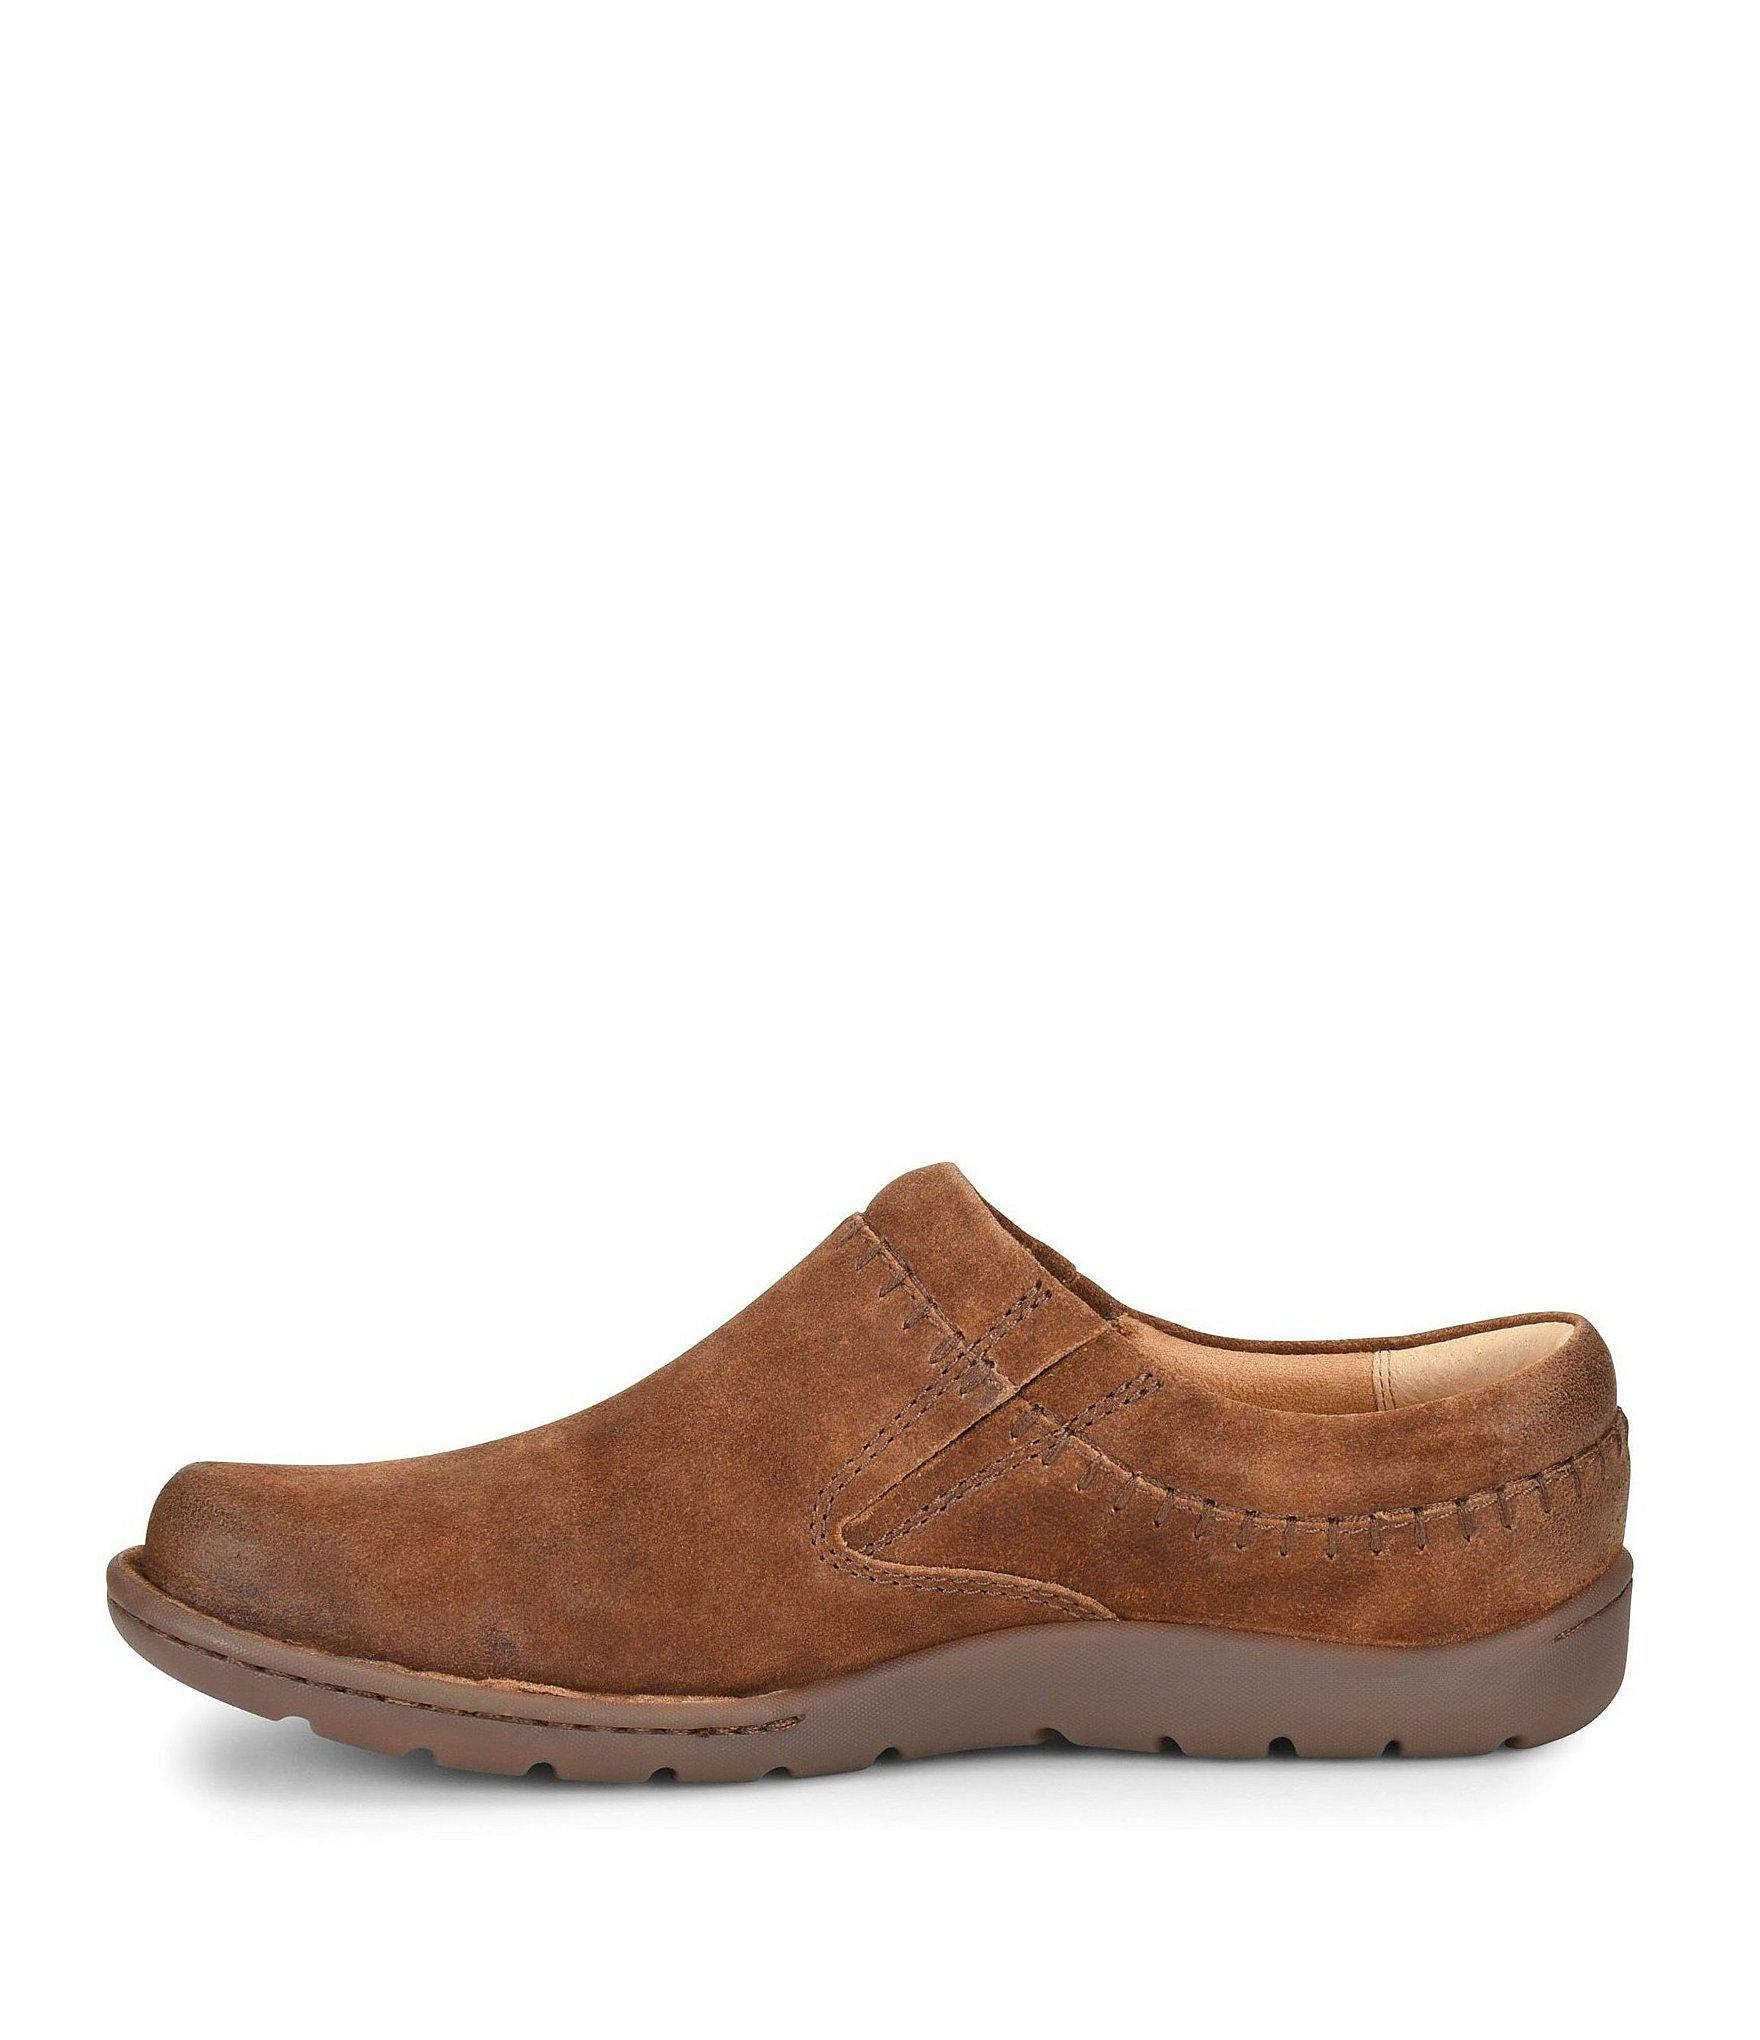 307371544a44 Lyst - Born Men s Nigel Leather And Suede Clogs in Brown for Men